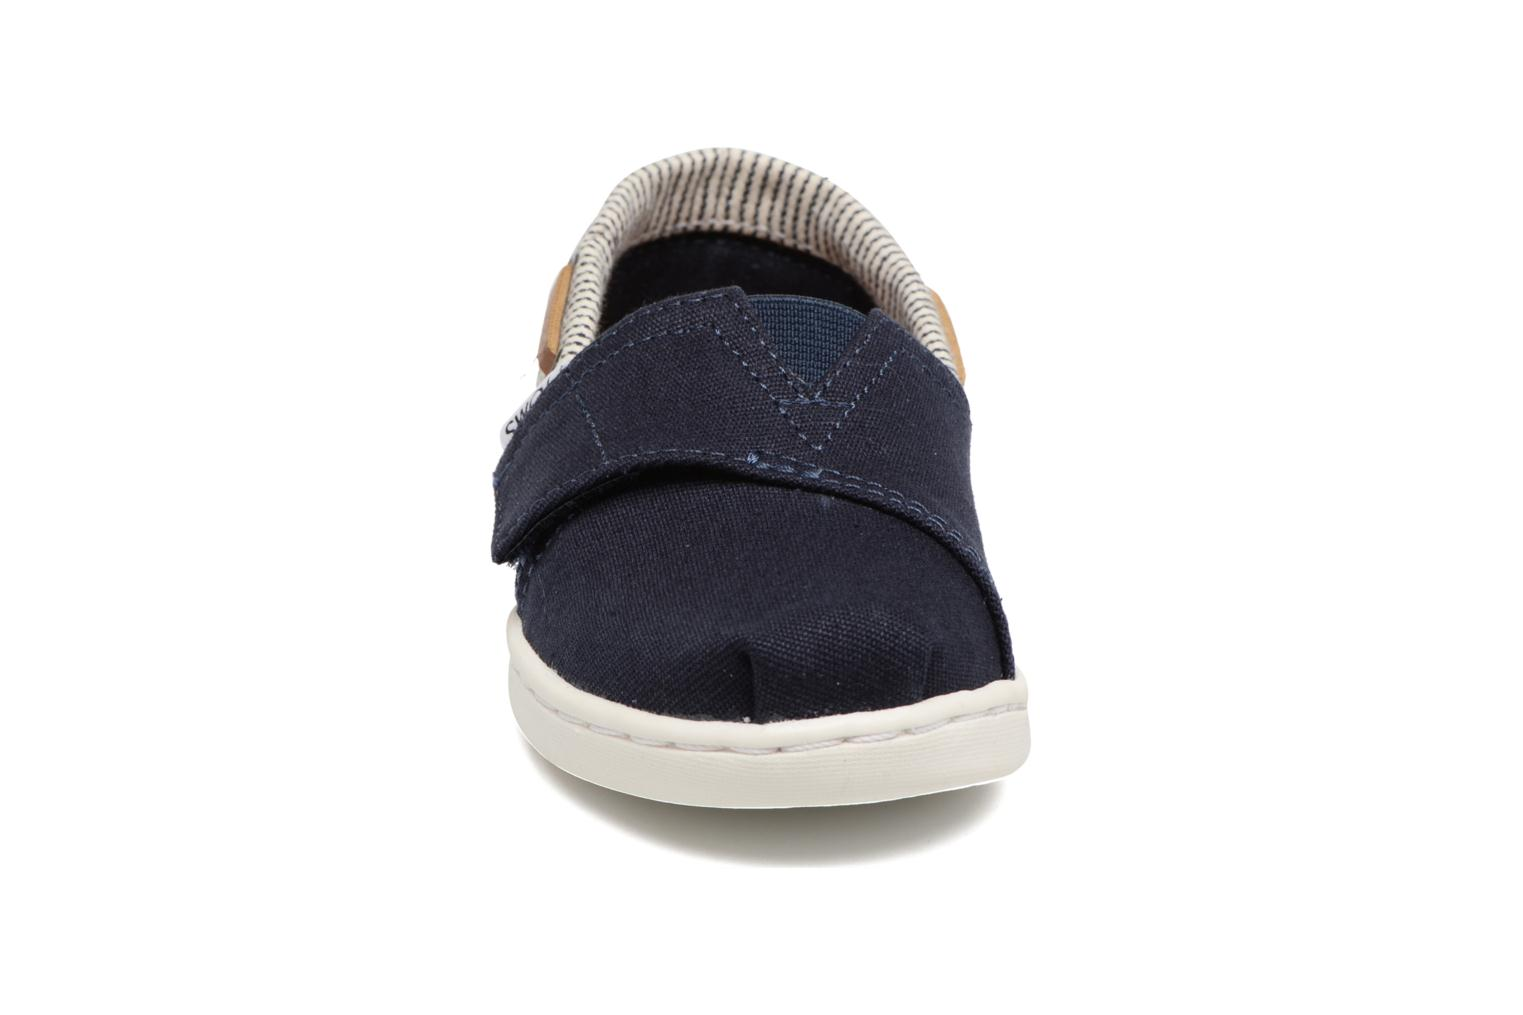 Bimini Espadrille Navy Canvas